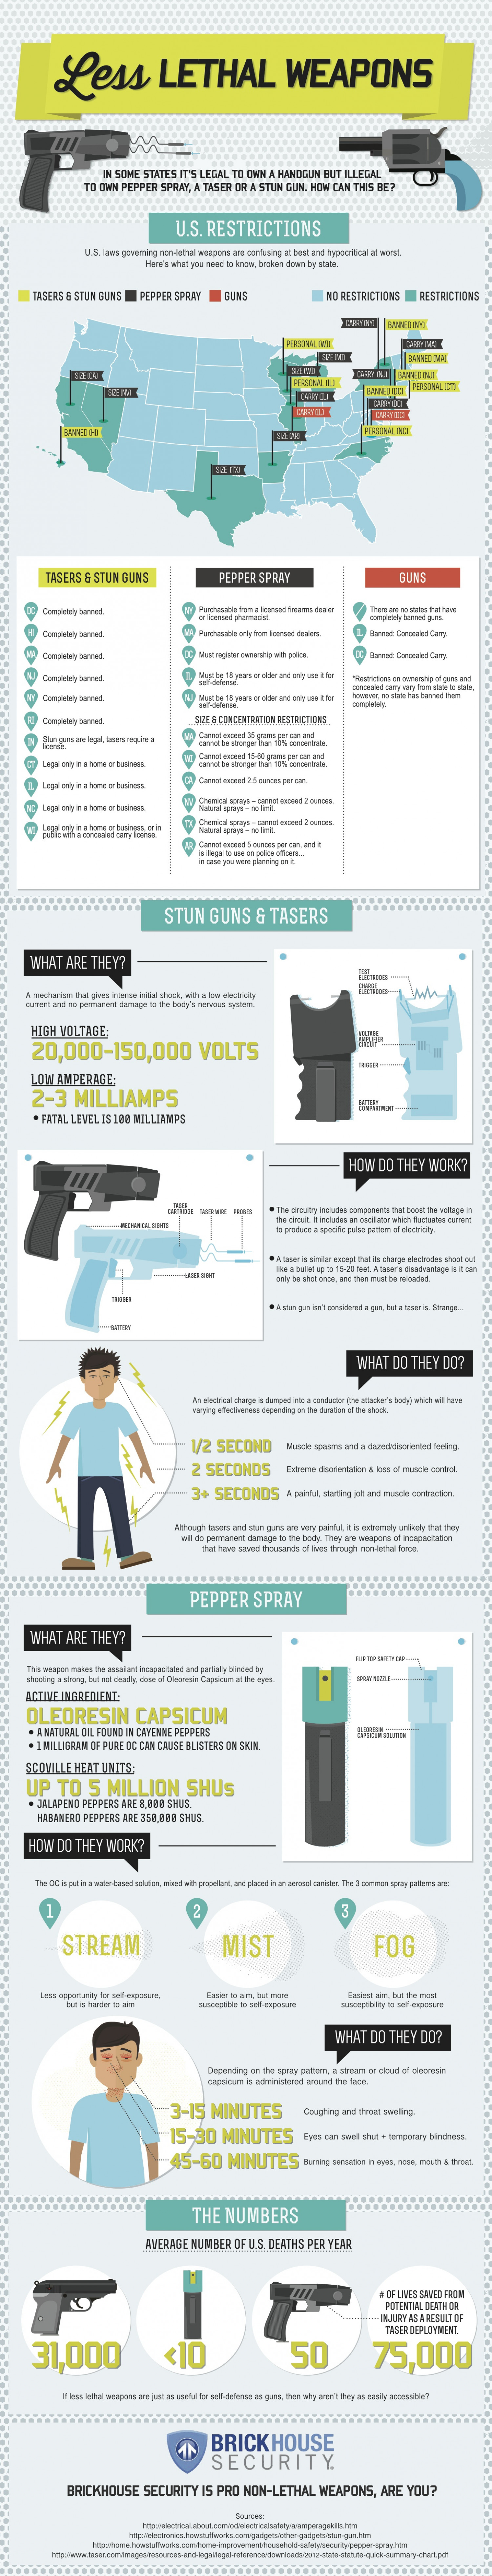 Less Lethal Vs. Lethal Weapons: Inconsistencies in Self Defense Laws Infographic